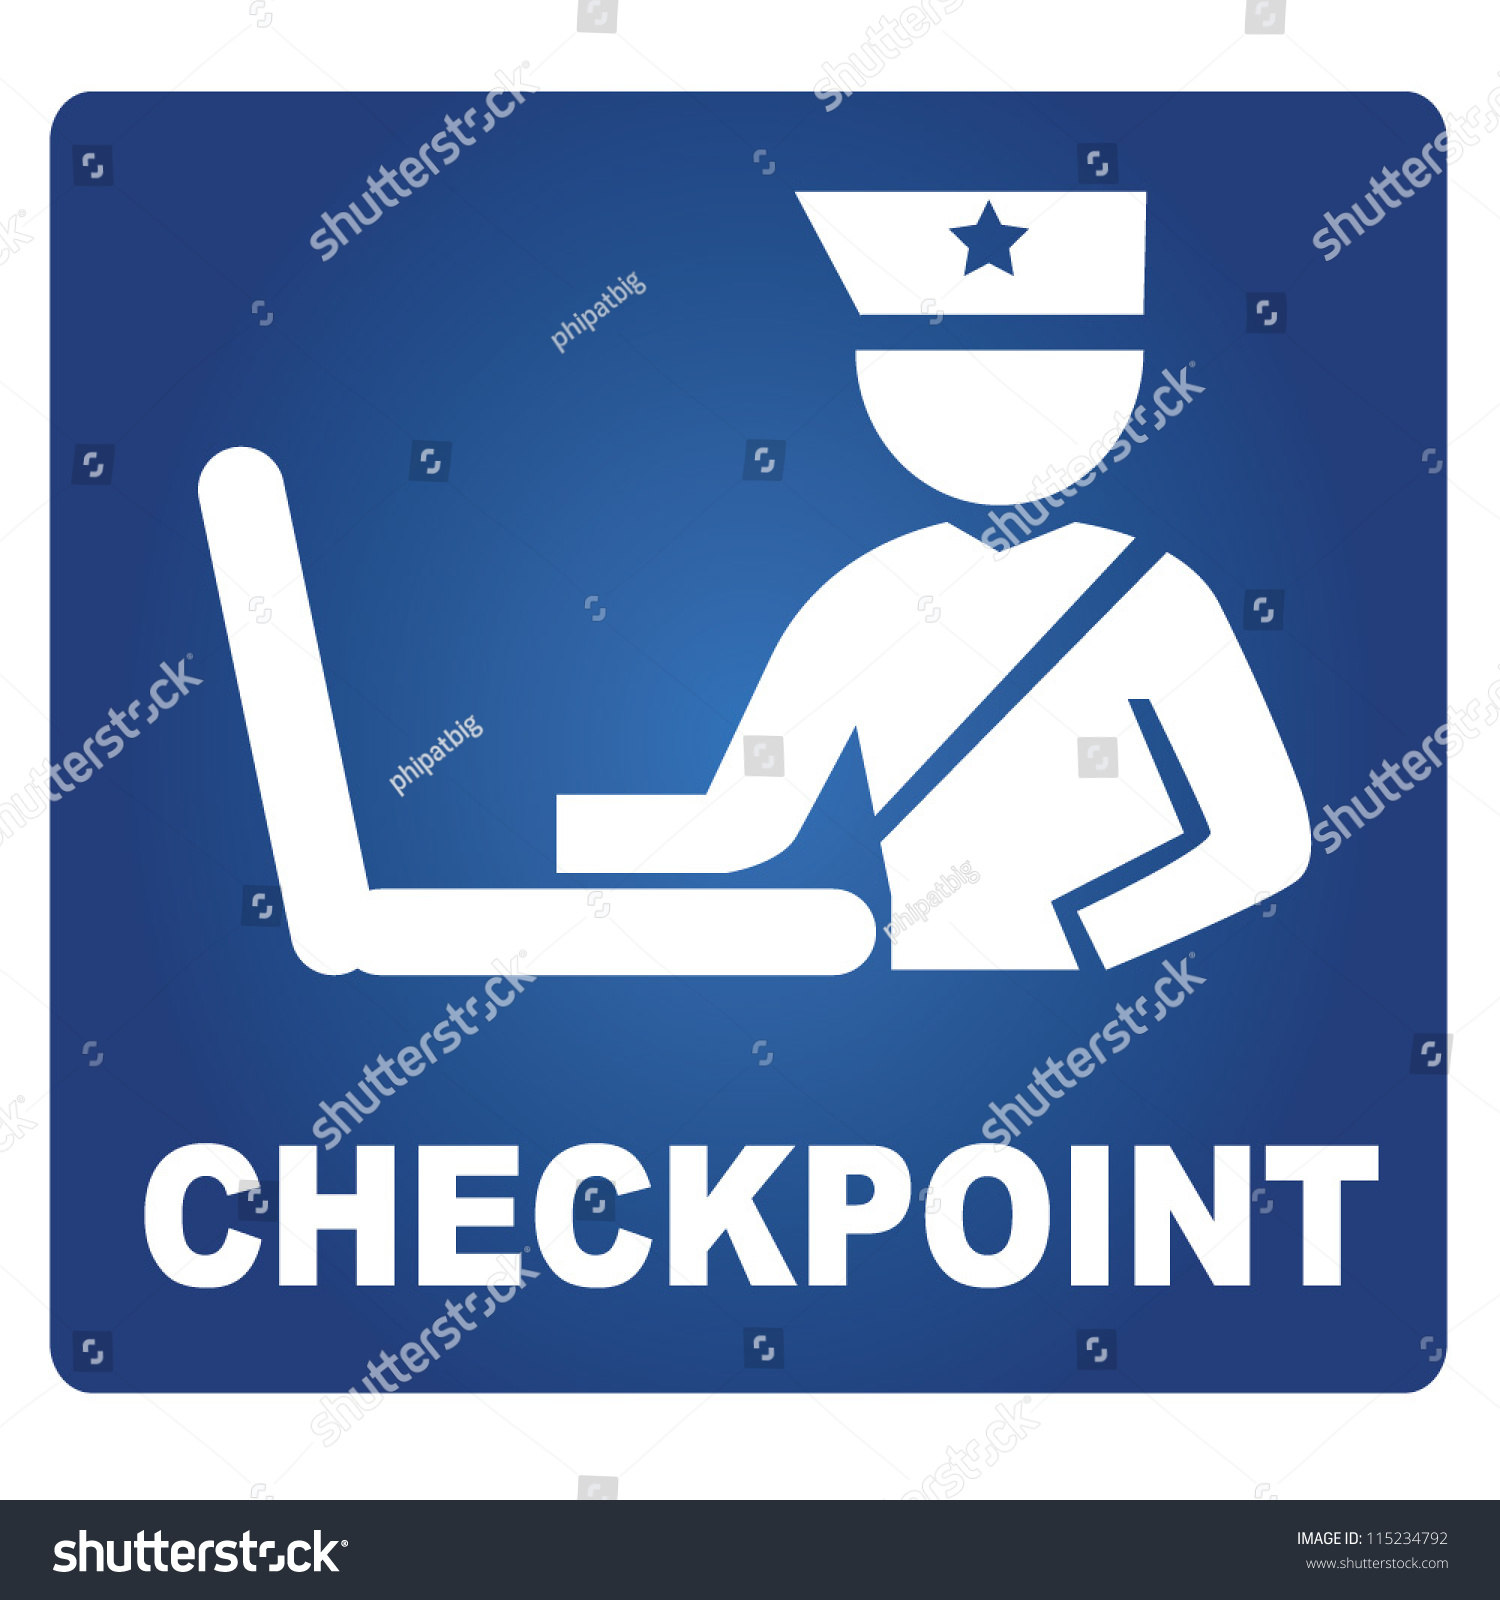 Checkpoint, Airport Checkpoint Stock Vector 115234792 : Shutterstock